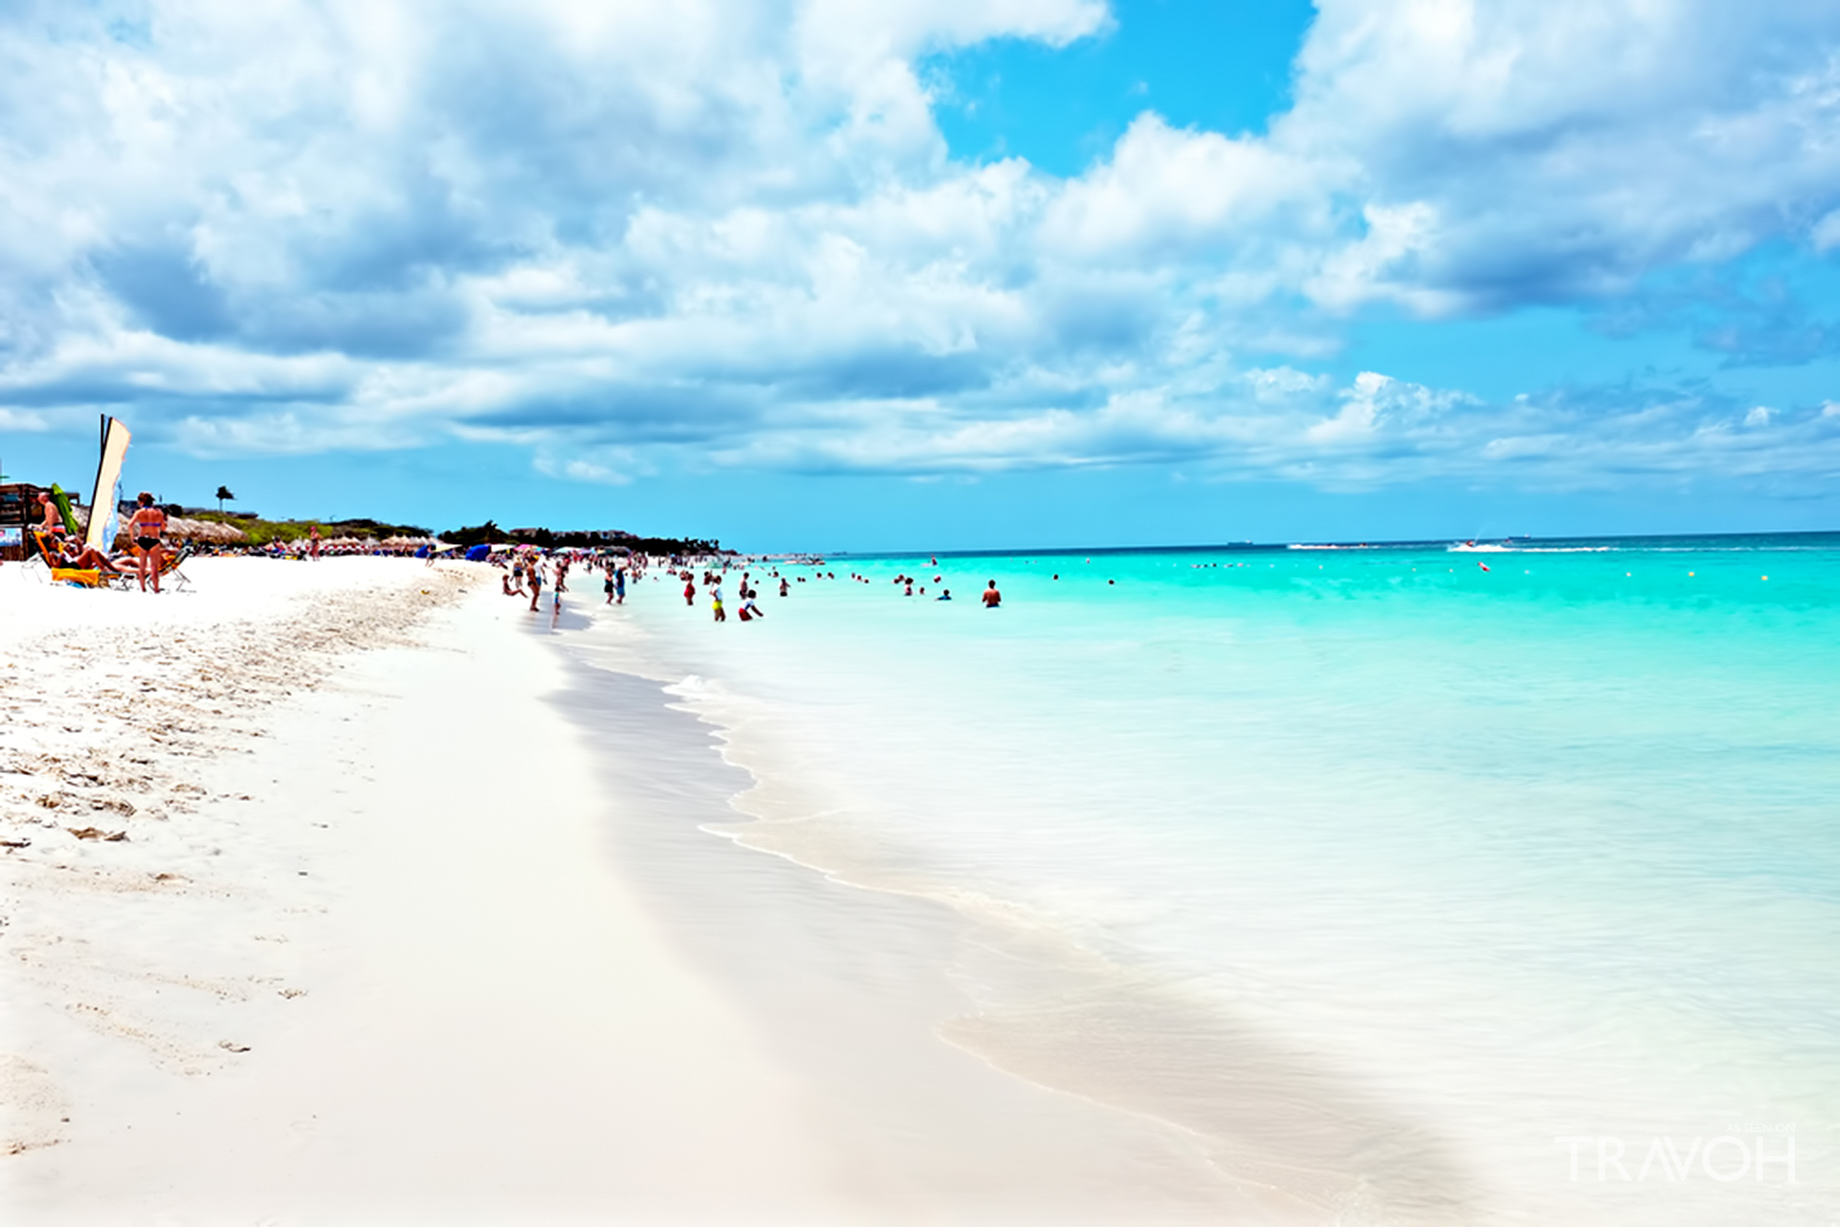 Hit the Beach - Five Signature Experiences on an ABC Islands Caribbean Yacht Charter